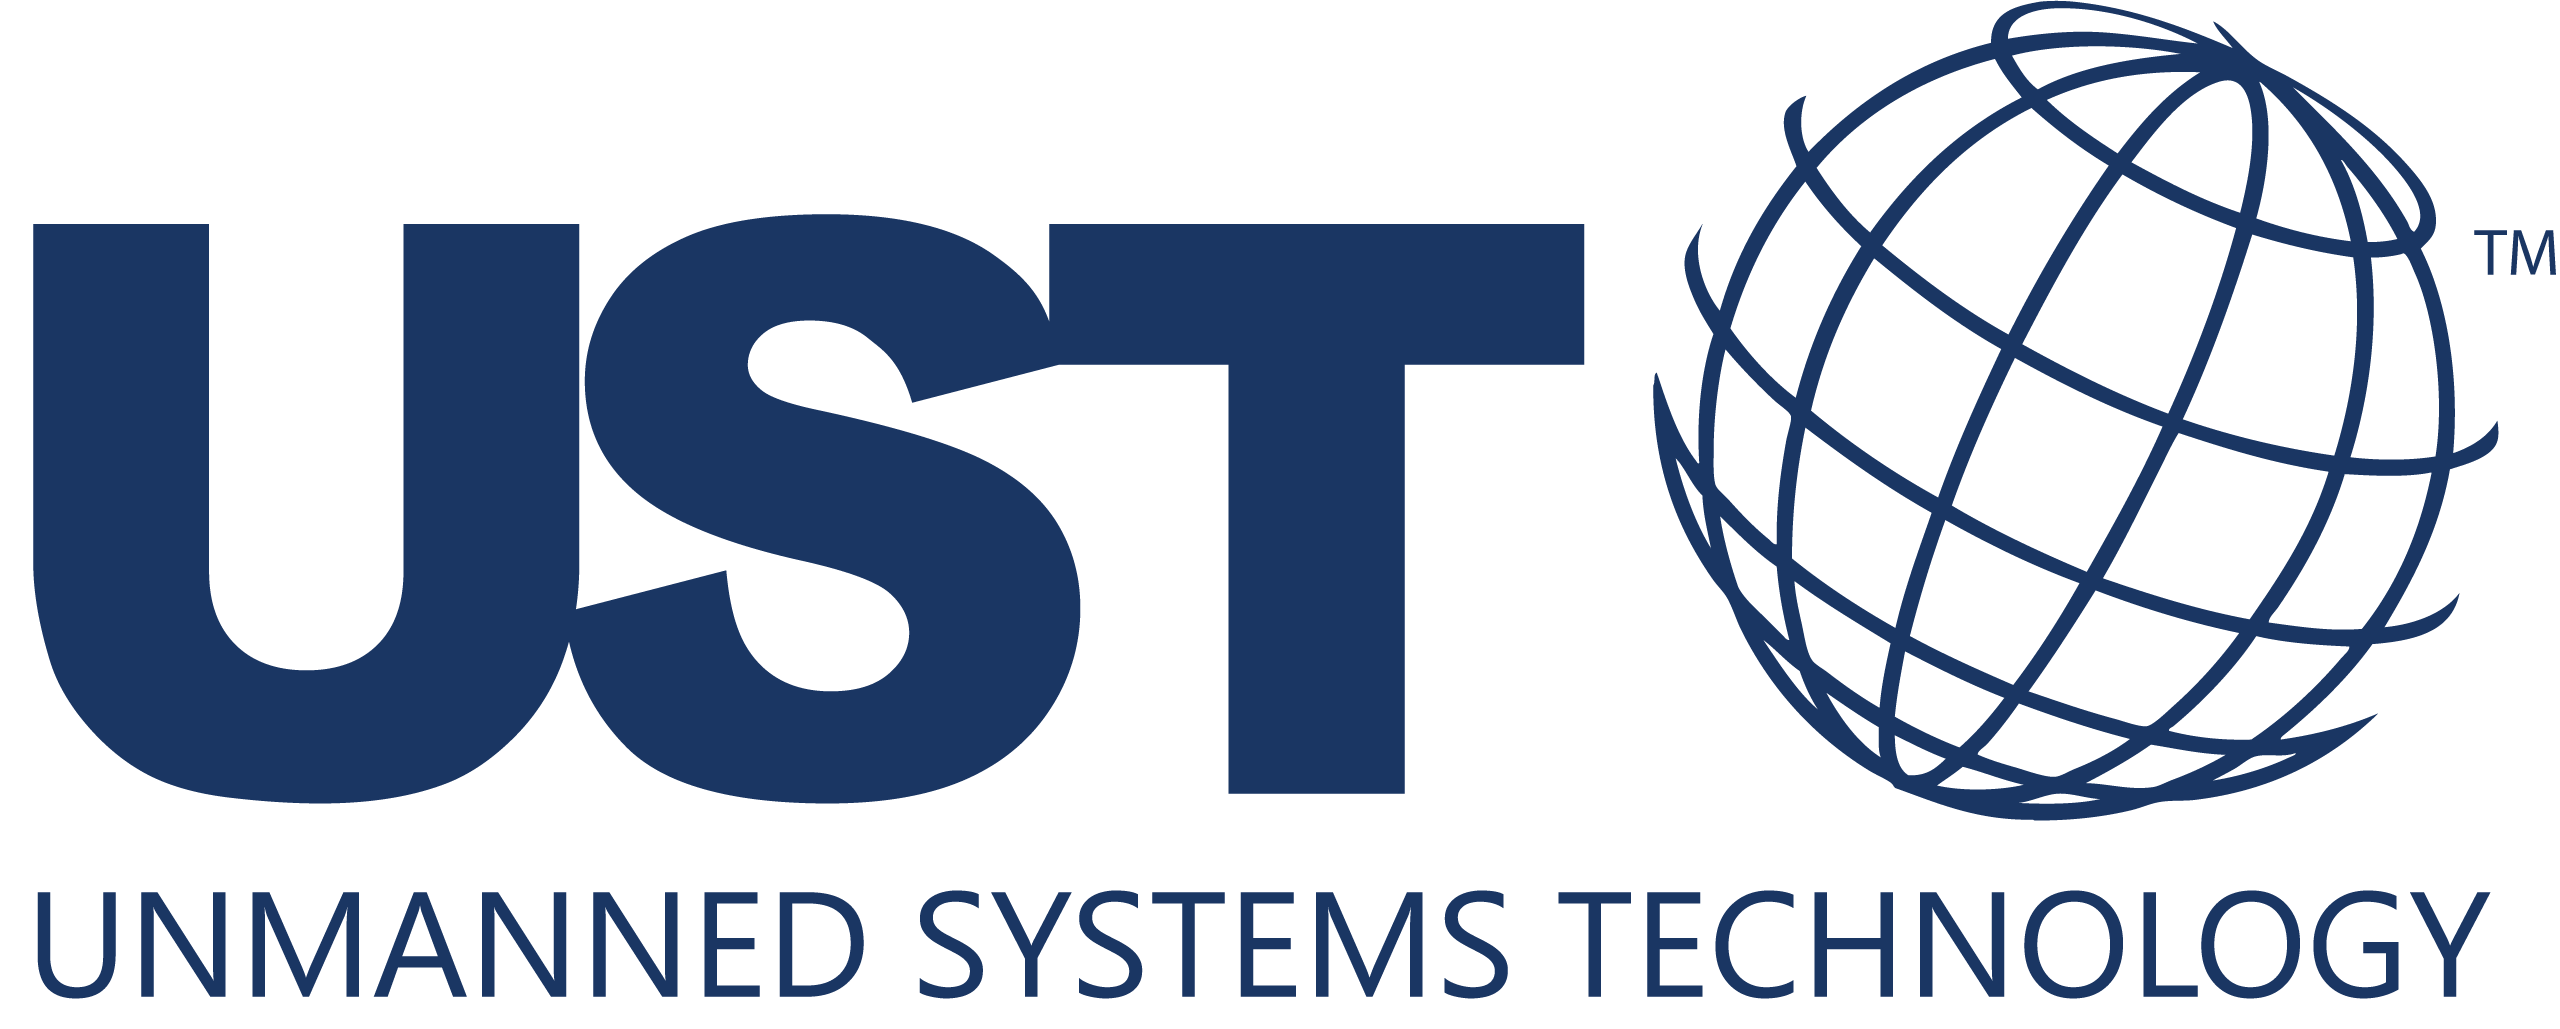 Unmanned Systems Technology Logo